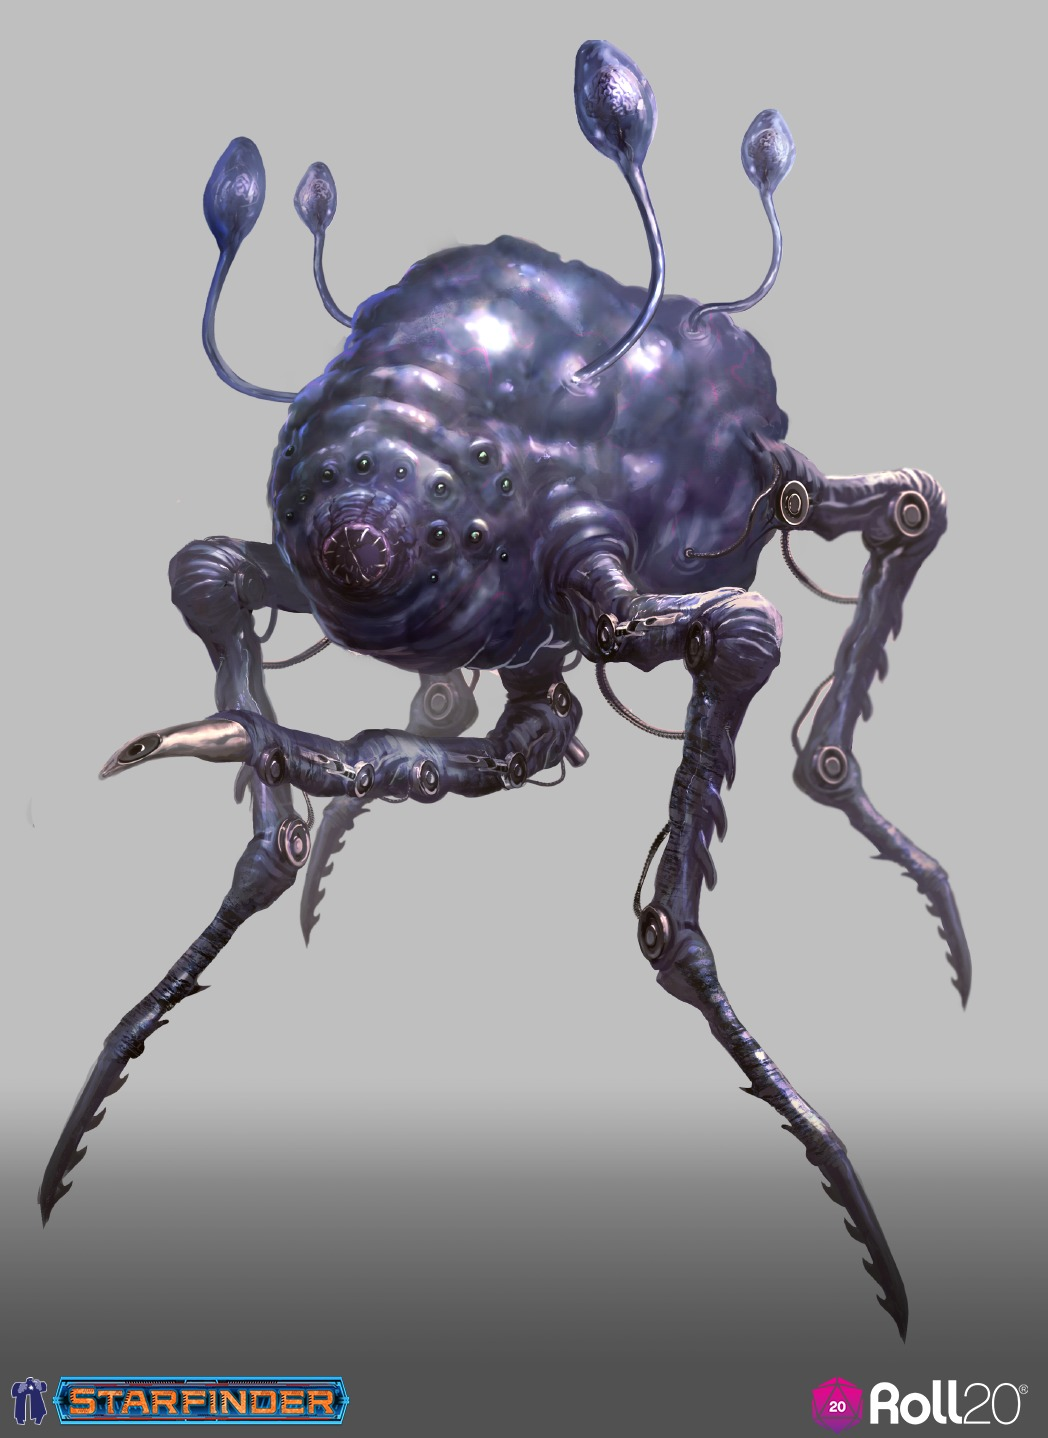 Starfinder Alien Archive - Roll20